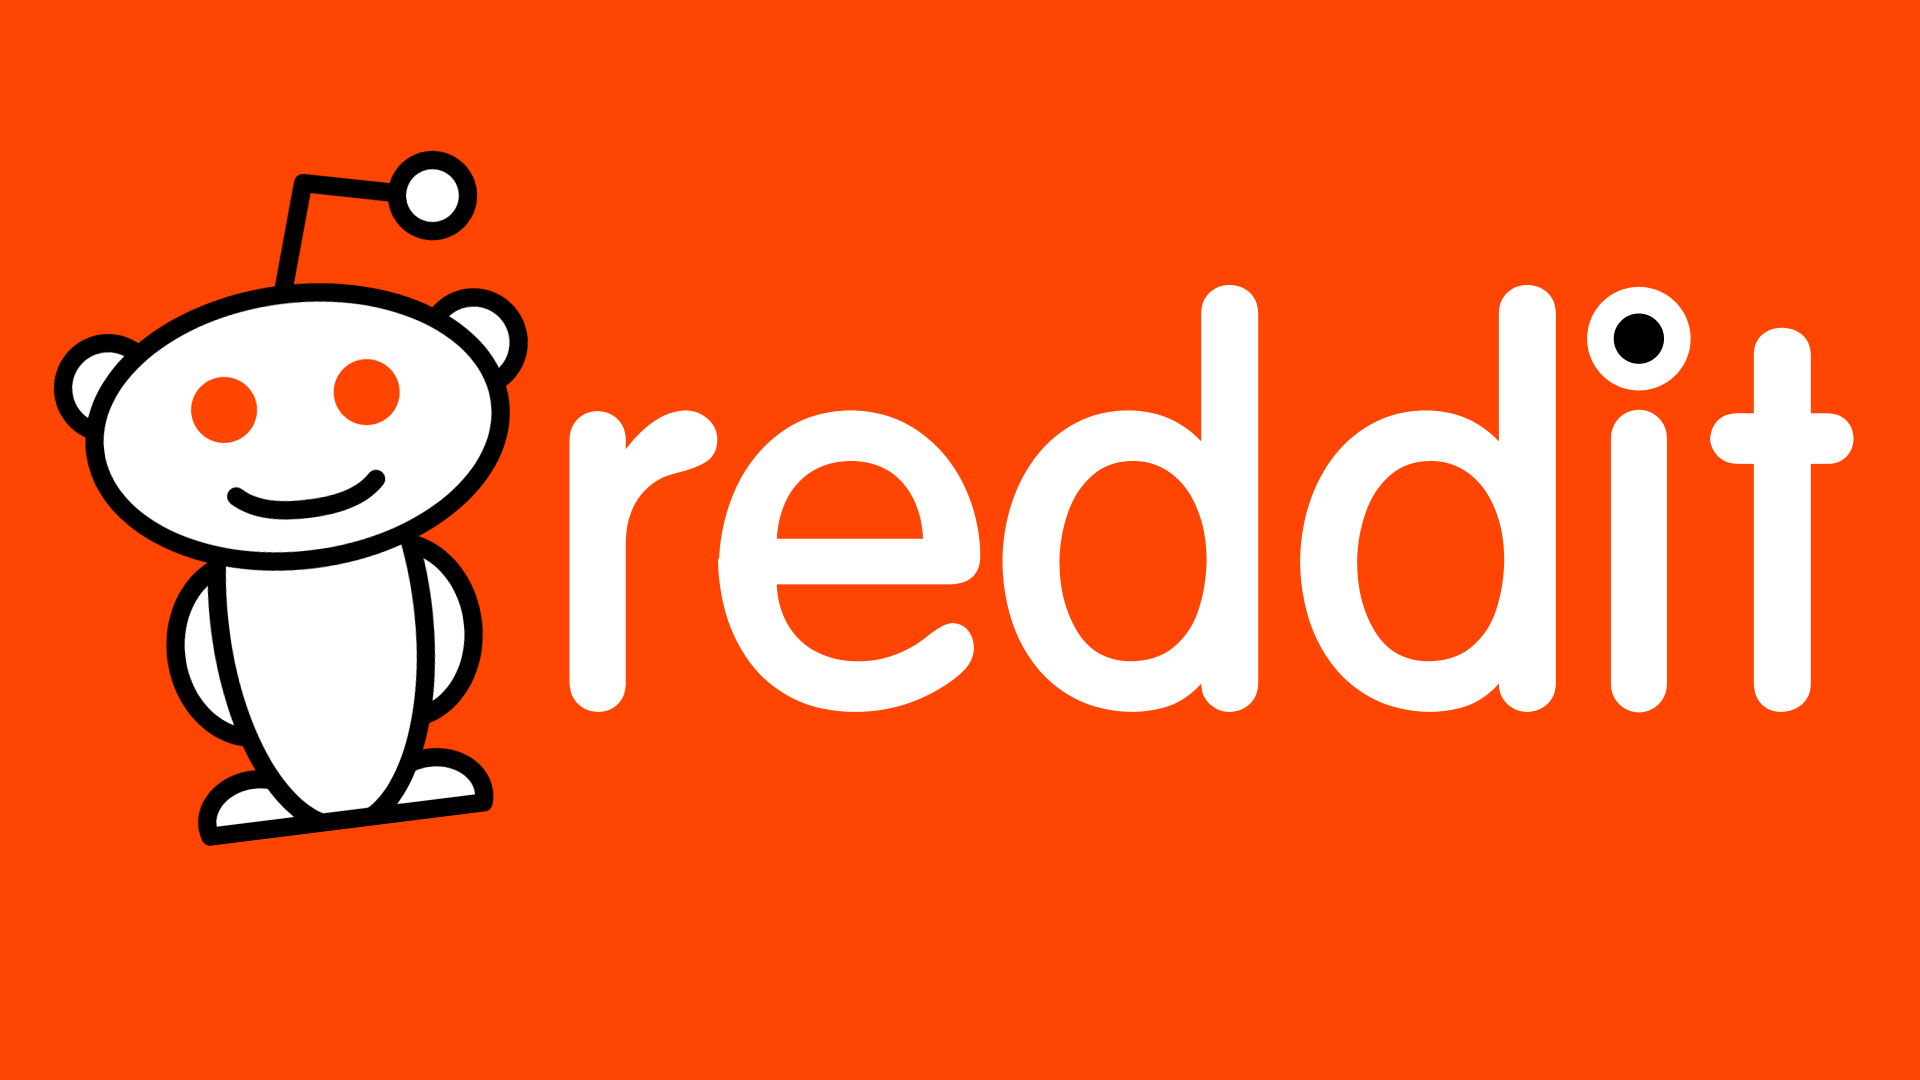 Reddit Discloses A Data Breach, A Hacker Accessed User Data